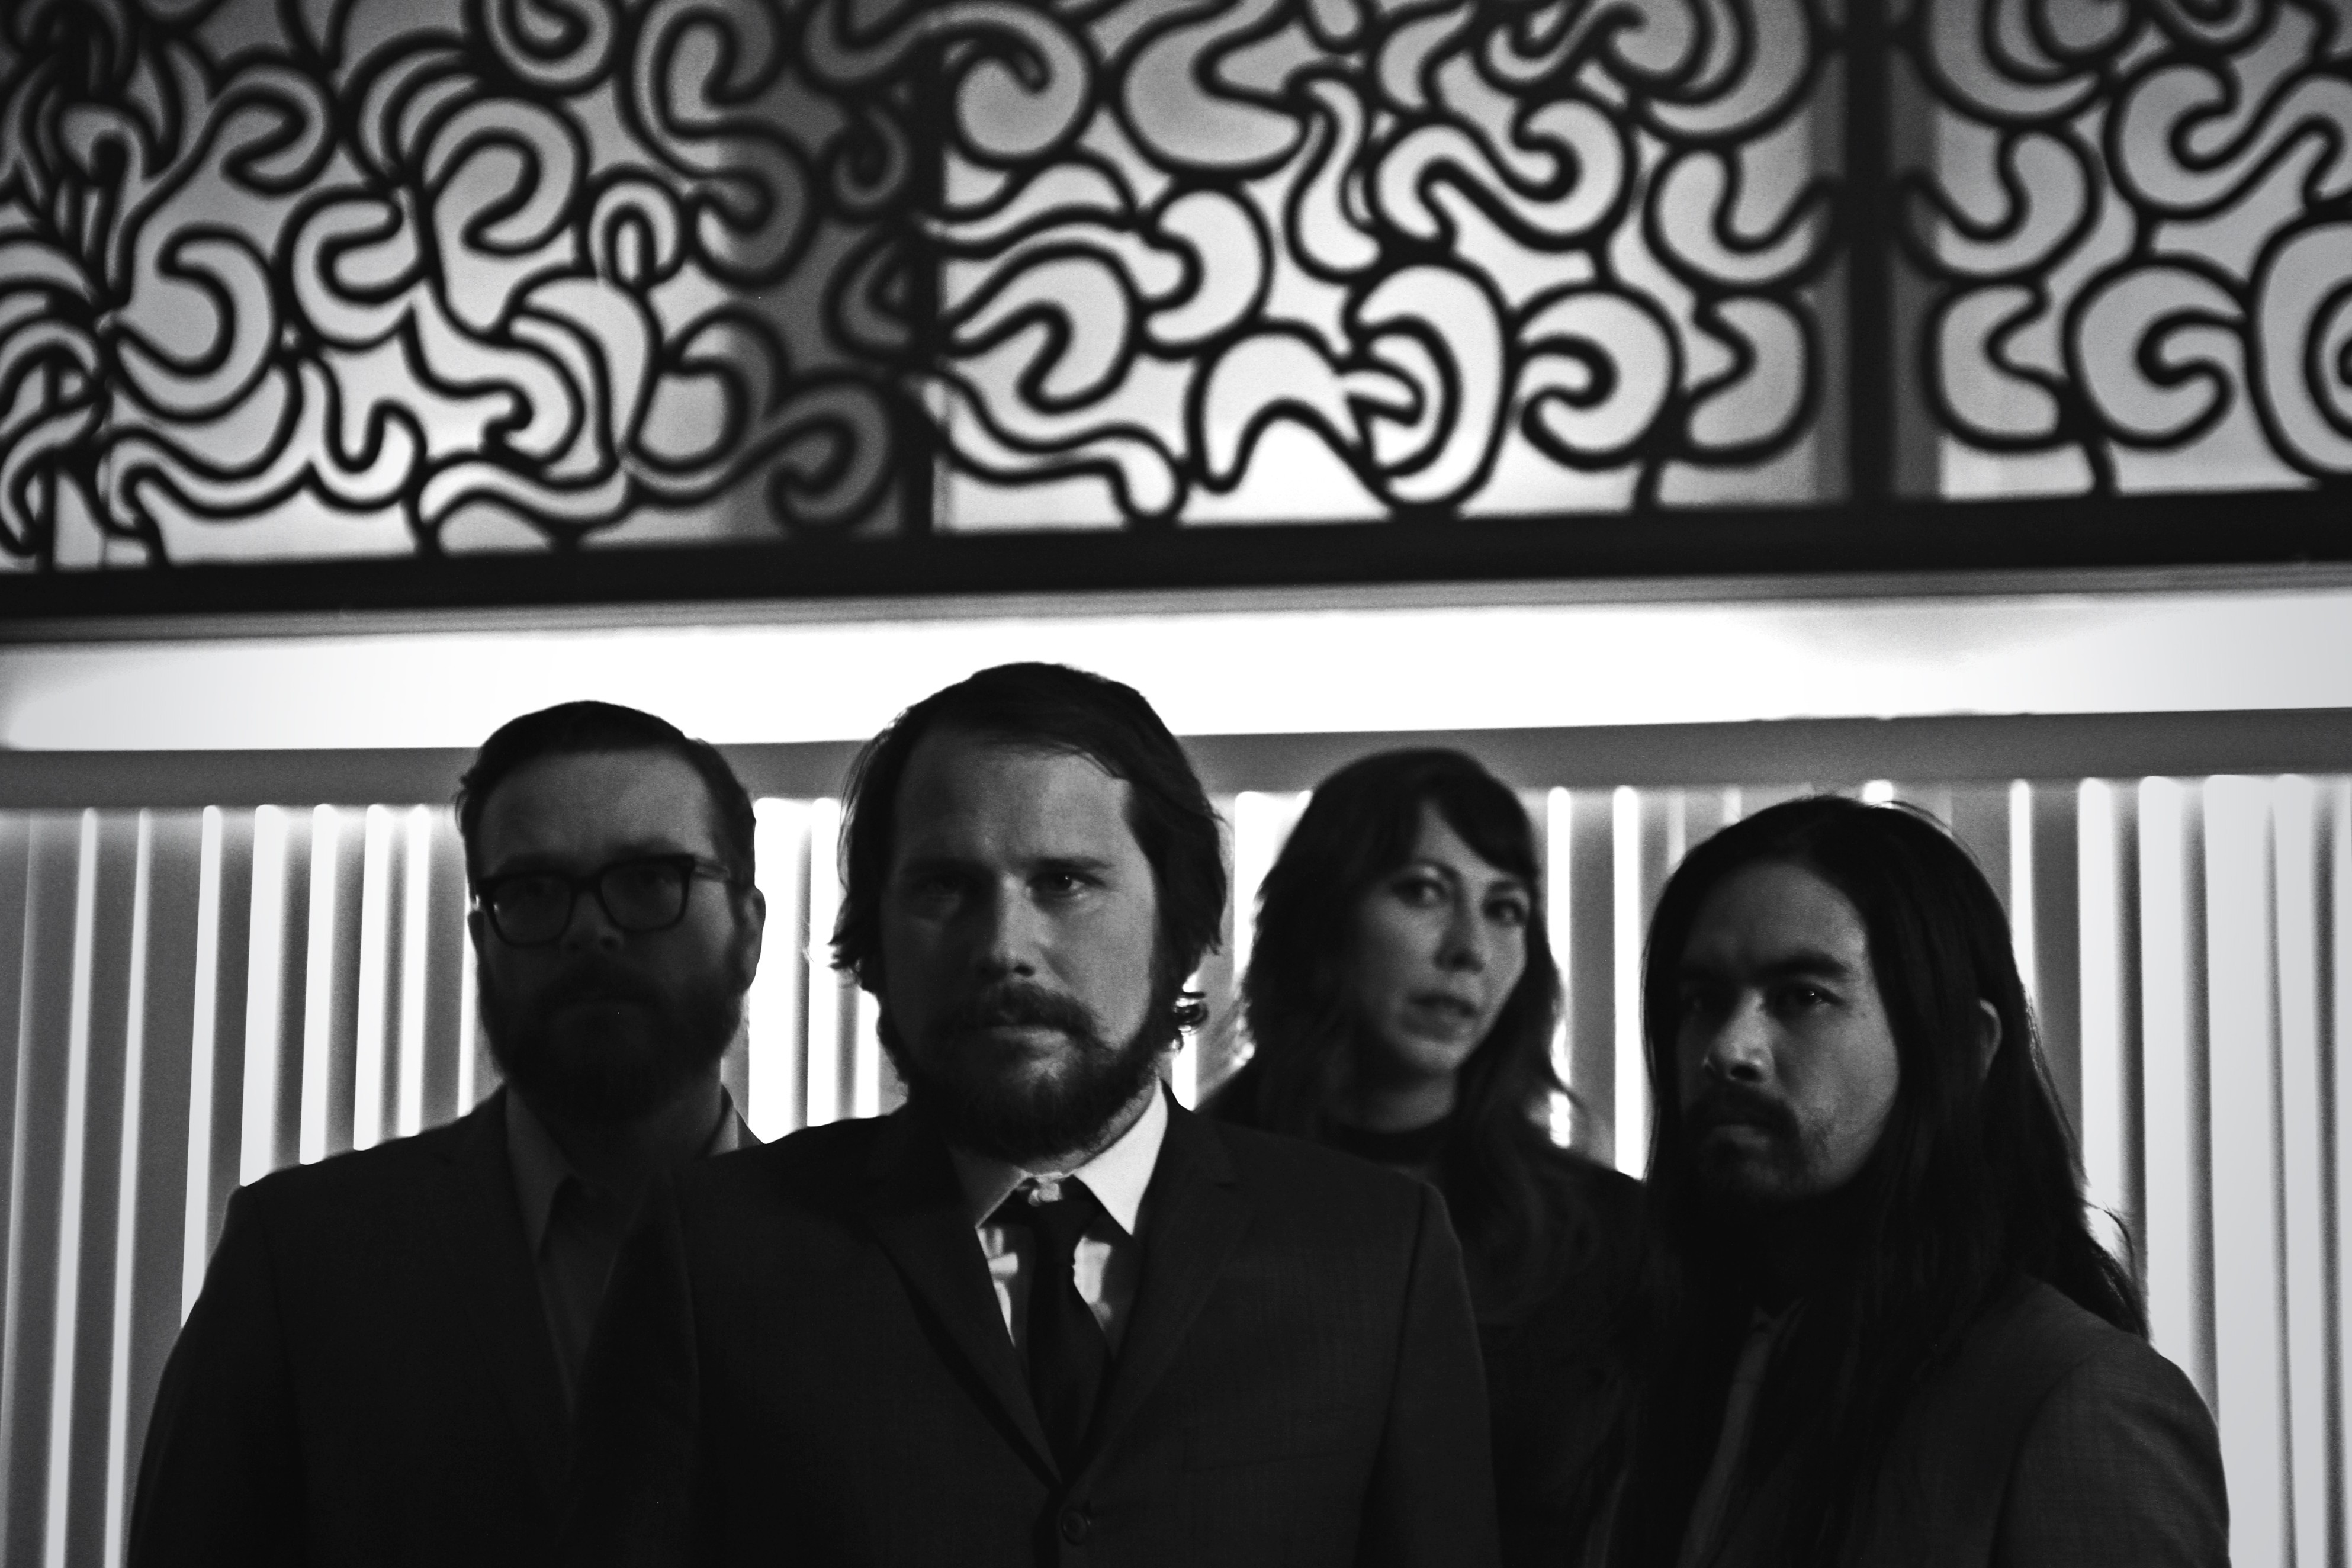 Review silversun pickups return to the fox theater in oakland photo by claire marie vogel kristyandbryce Gallery